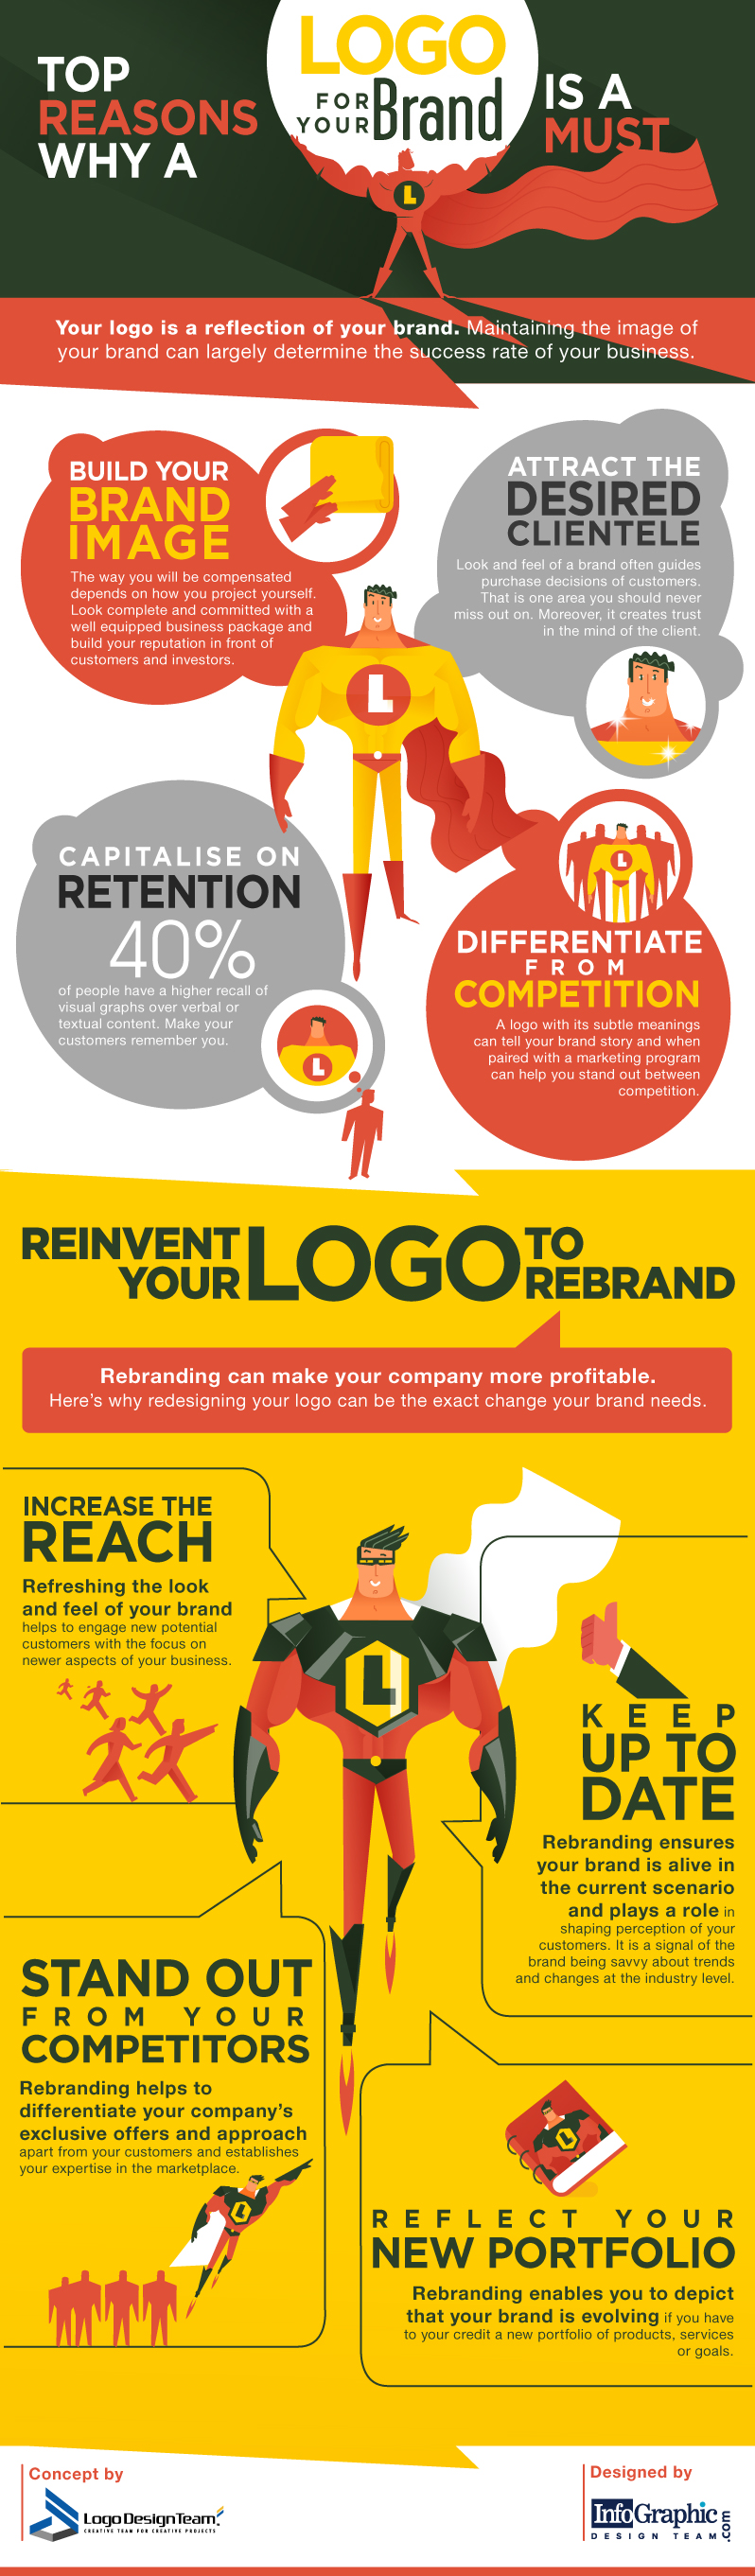 Infographic-Why-A-Logo-Is-A-Must-For-Your-Brand